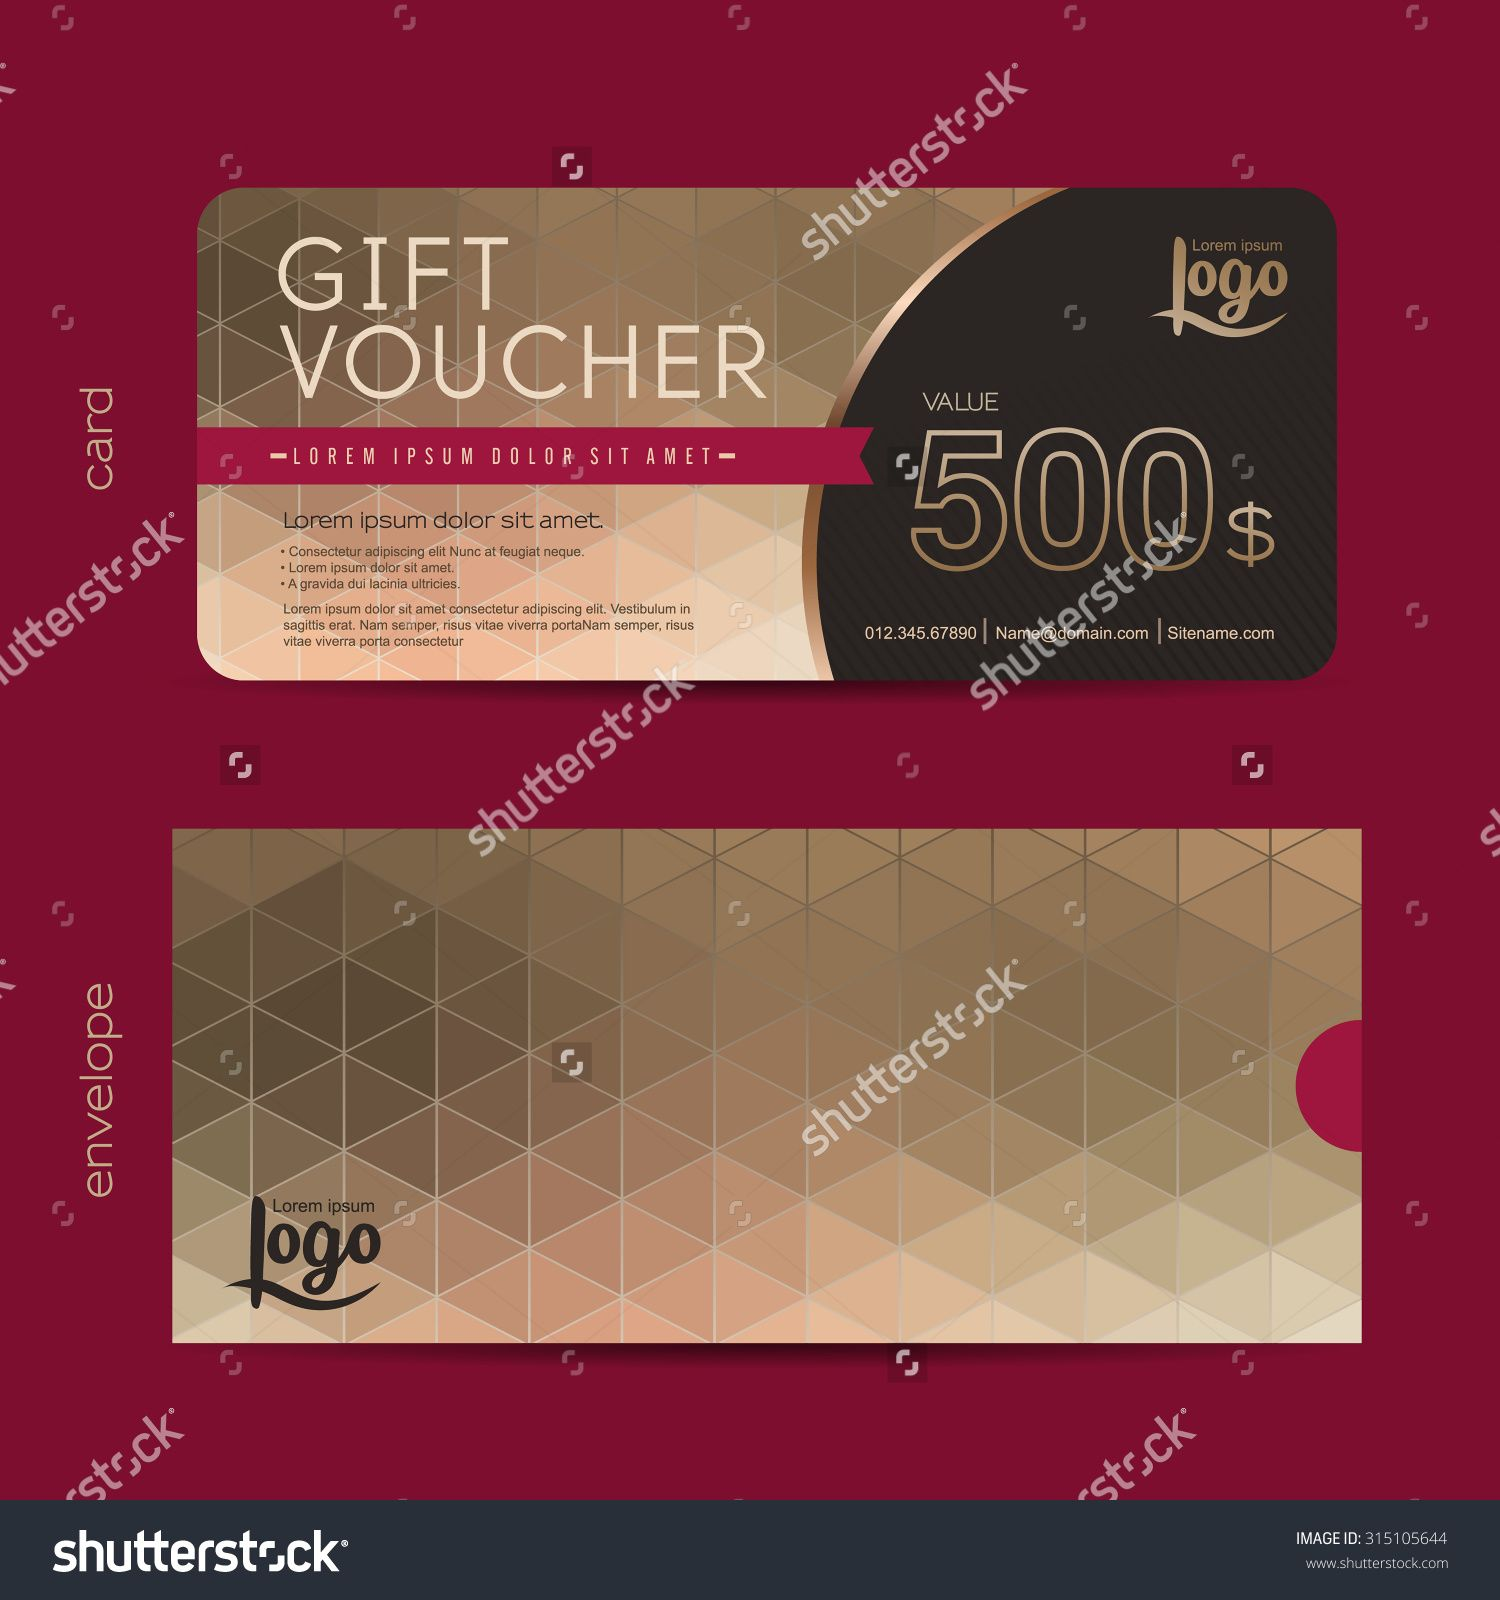 Gift voucher template with premium pattern,gift voucher certificate ...